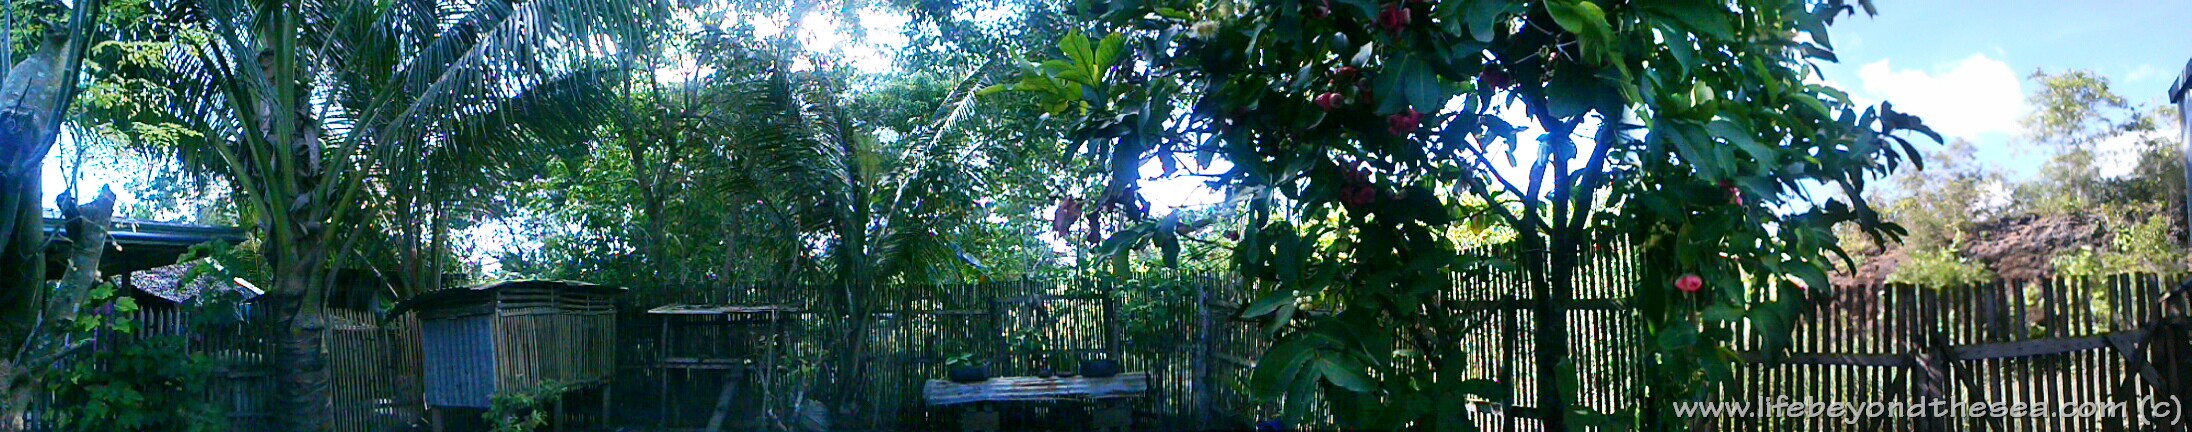 A panorama shot of my yard.  I plan to build a nipa-hut patio in the center later this year.